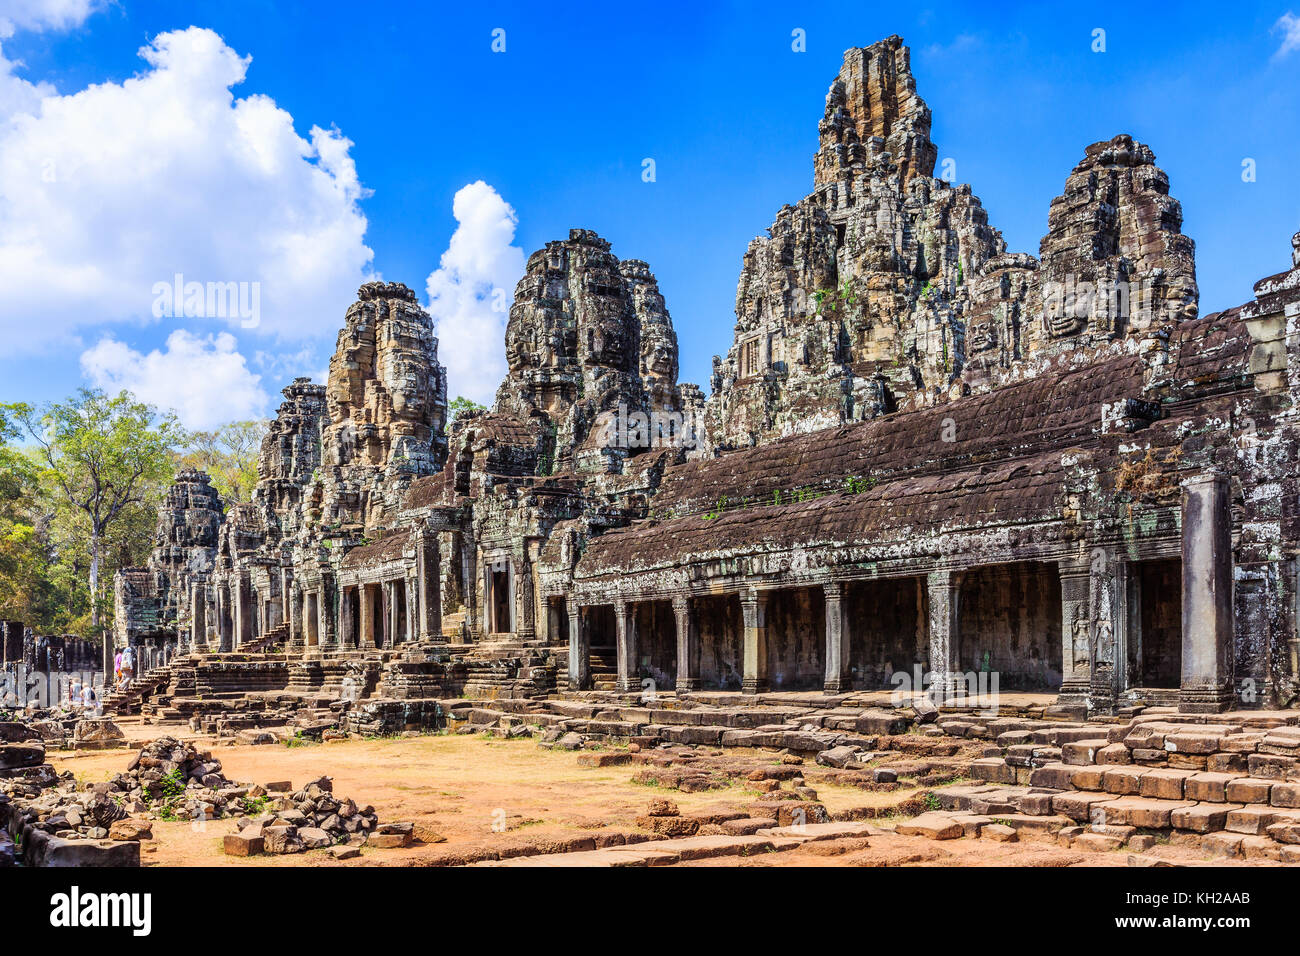 Angkor, Cambodia. The inner gallery of the Bayon temple. - Stock Image